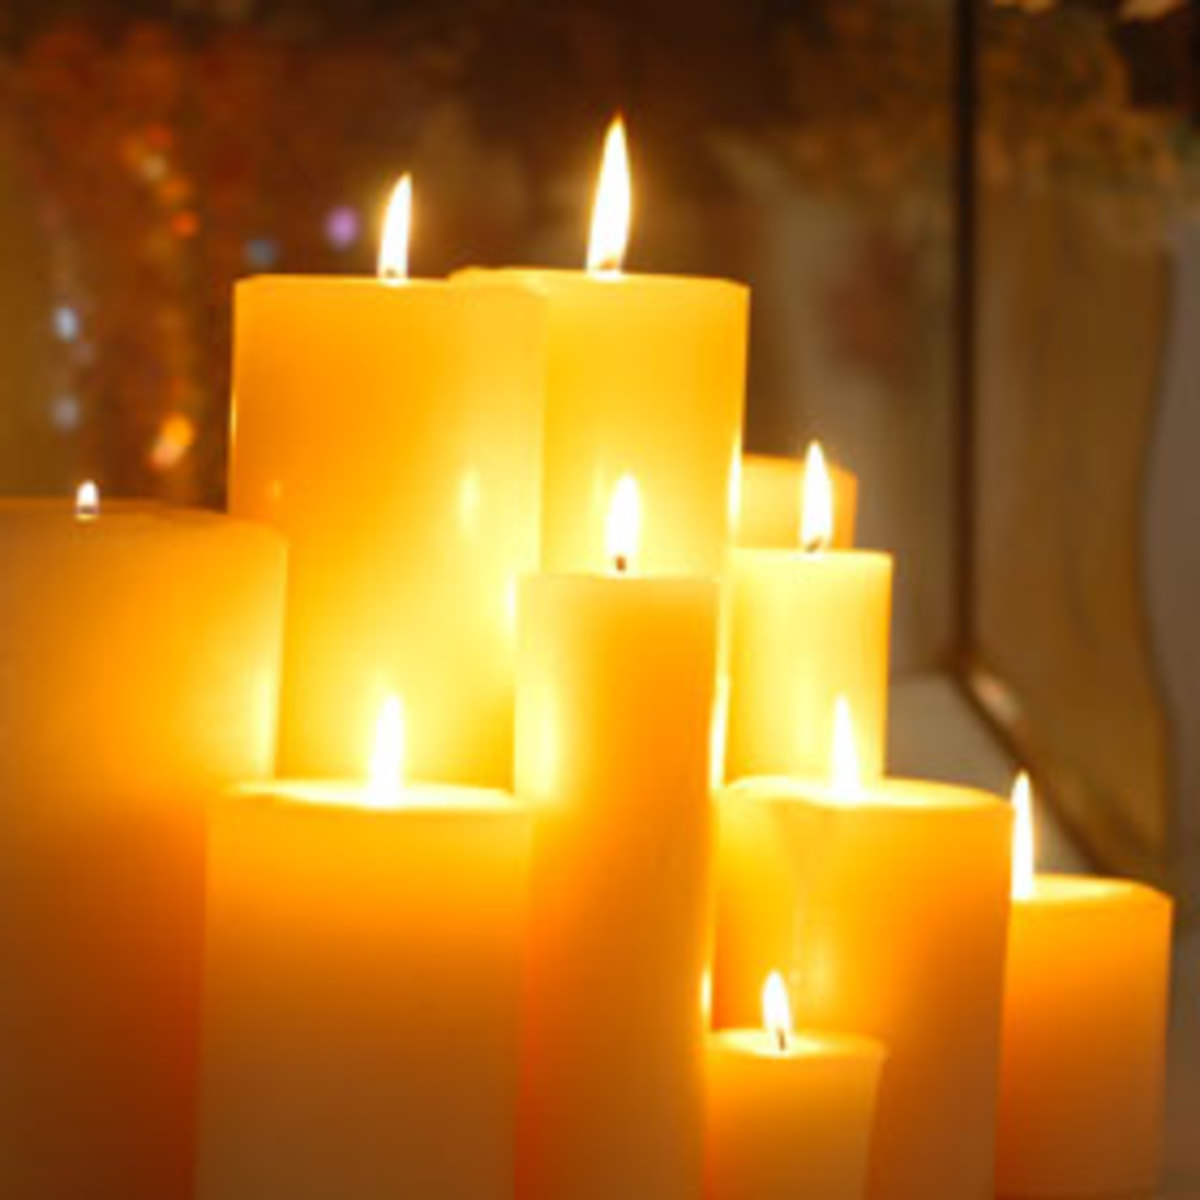 Beeswax candles: some curiosities and how to make them